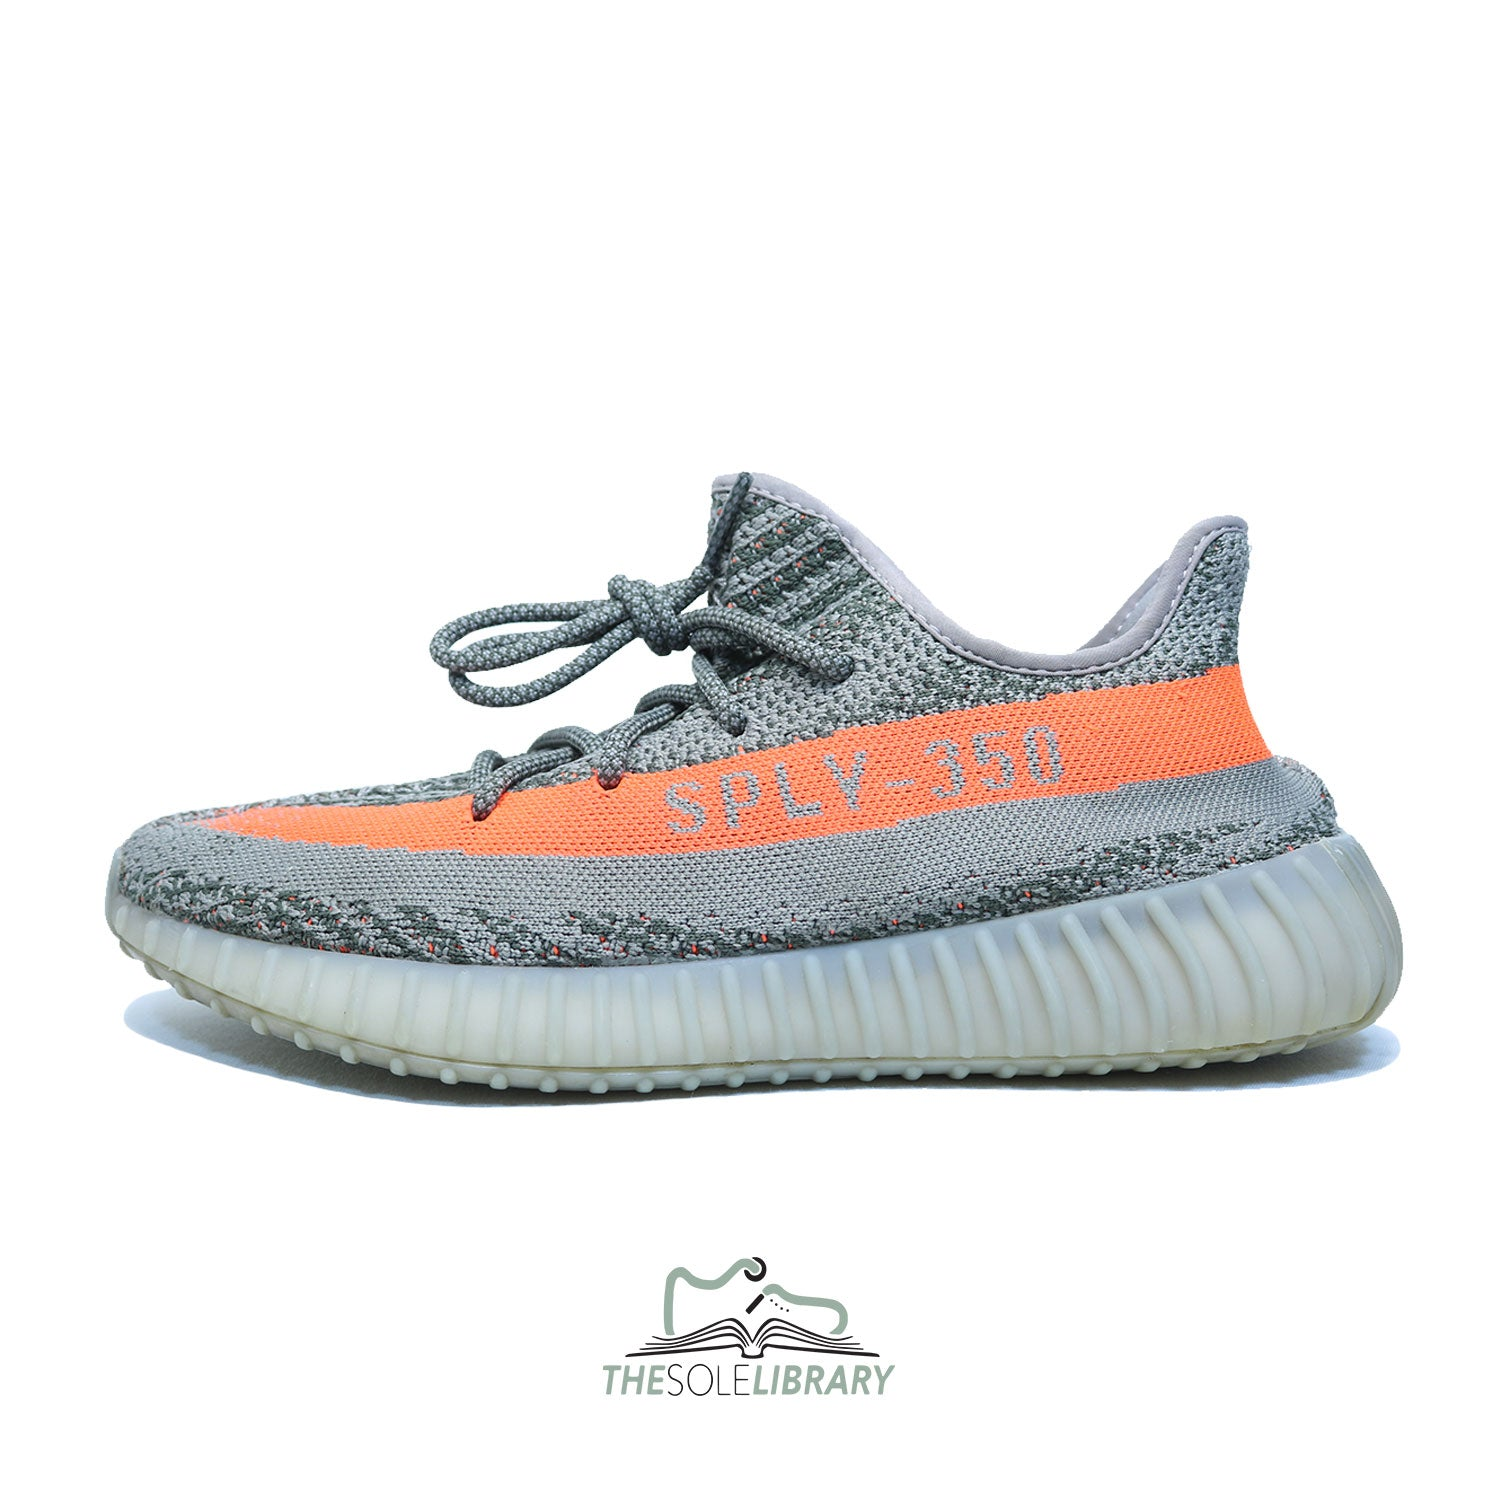 7d46e355125 Adidas Yeezy Boost 350 V2 Beluga For Sale - The Sole Library